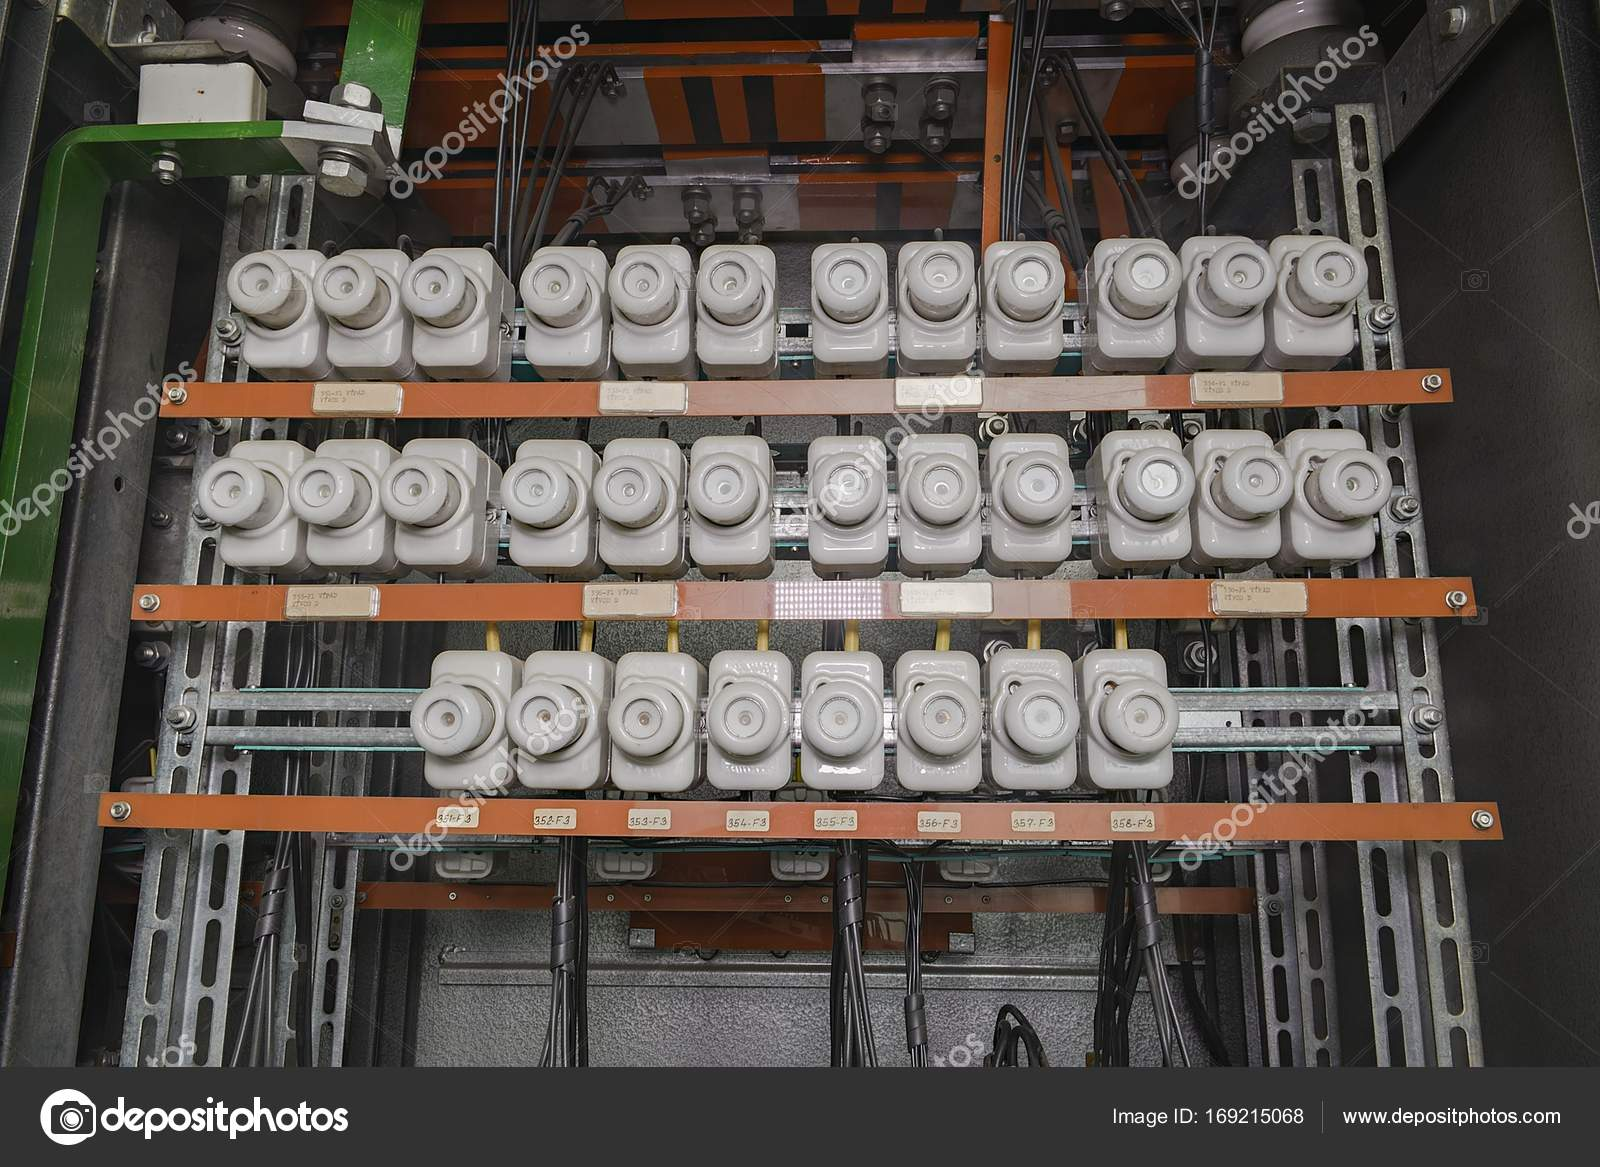 an old fuse box with cables old electrical panel, electrical boxan old fuse box with cables old electrical panel, electrical box, control panel\u2013 stock image